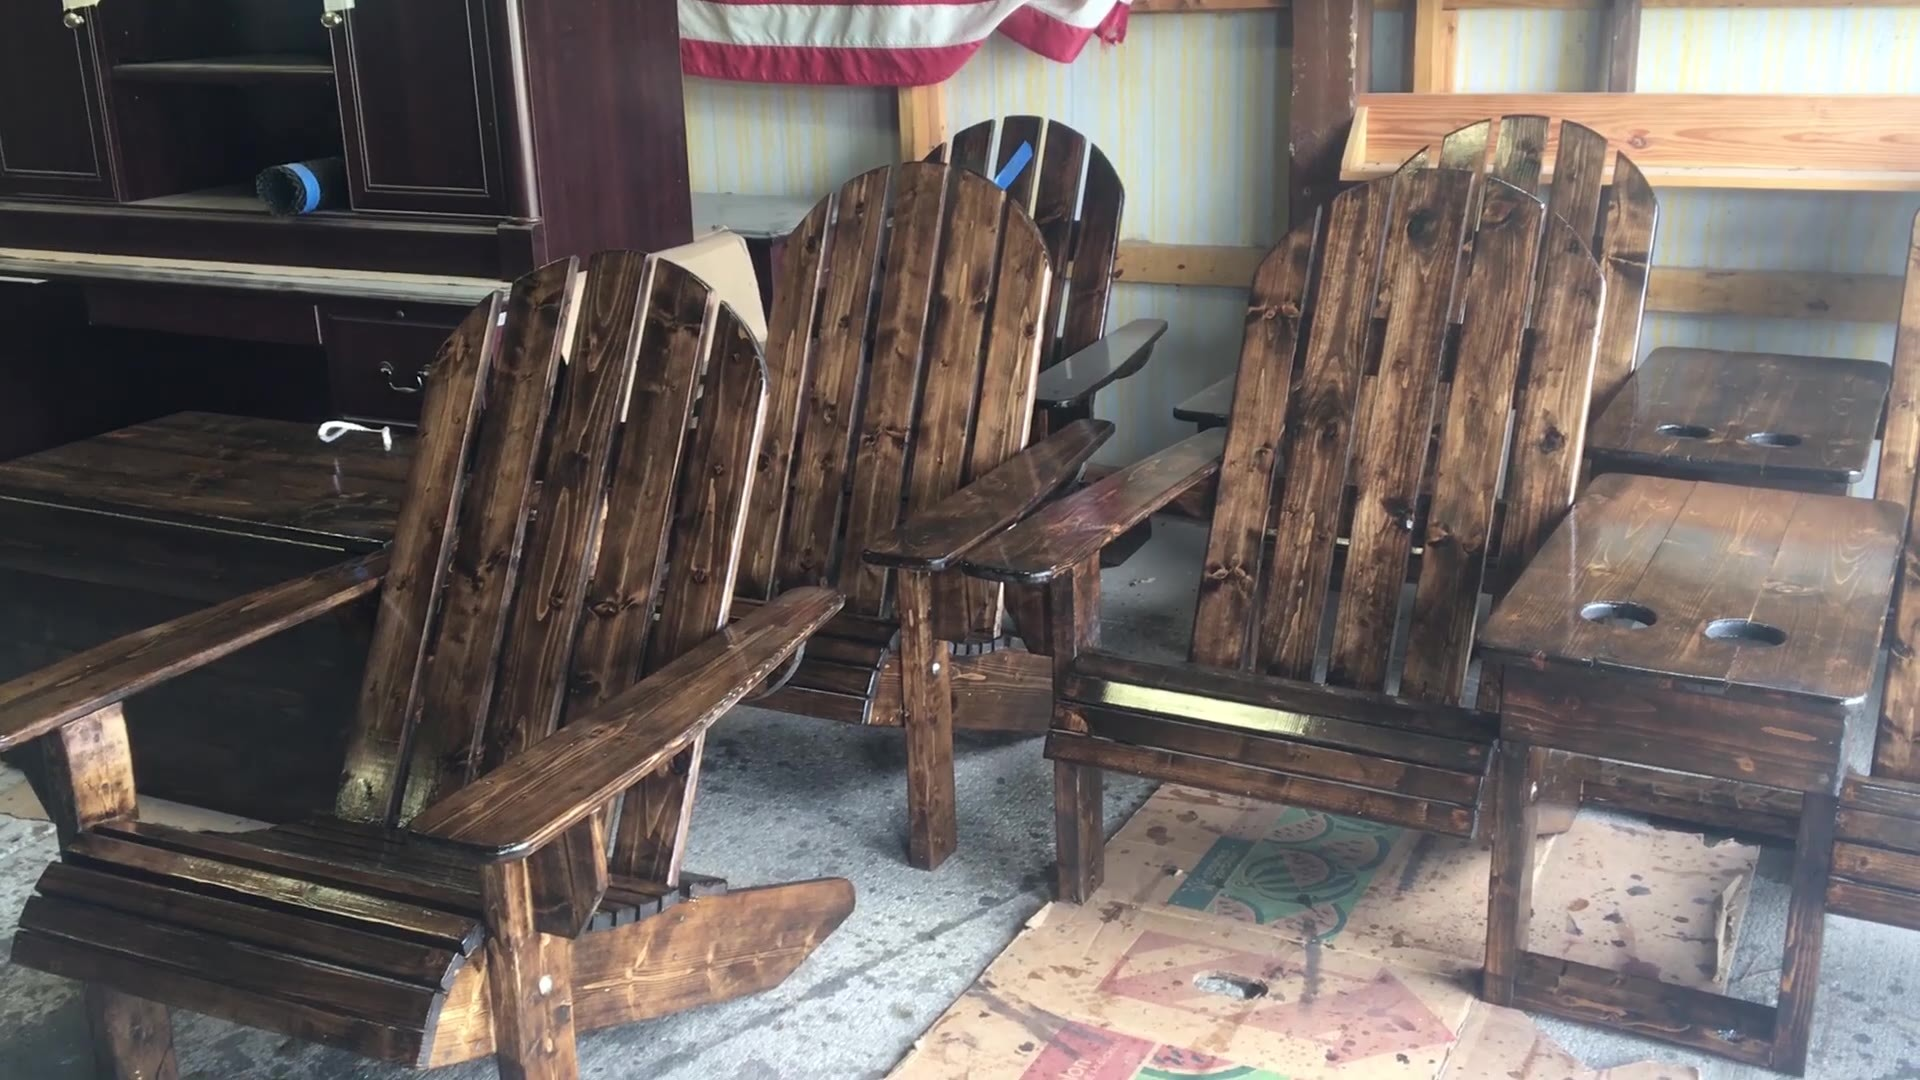 Handmade Furniture Crafted By Inmates Sold On Pasco Sheriff S Office Website